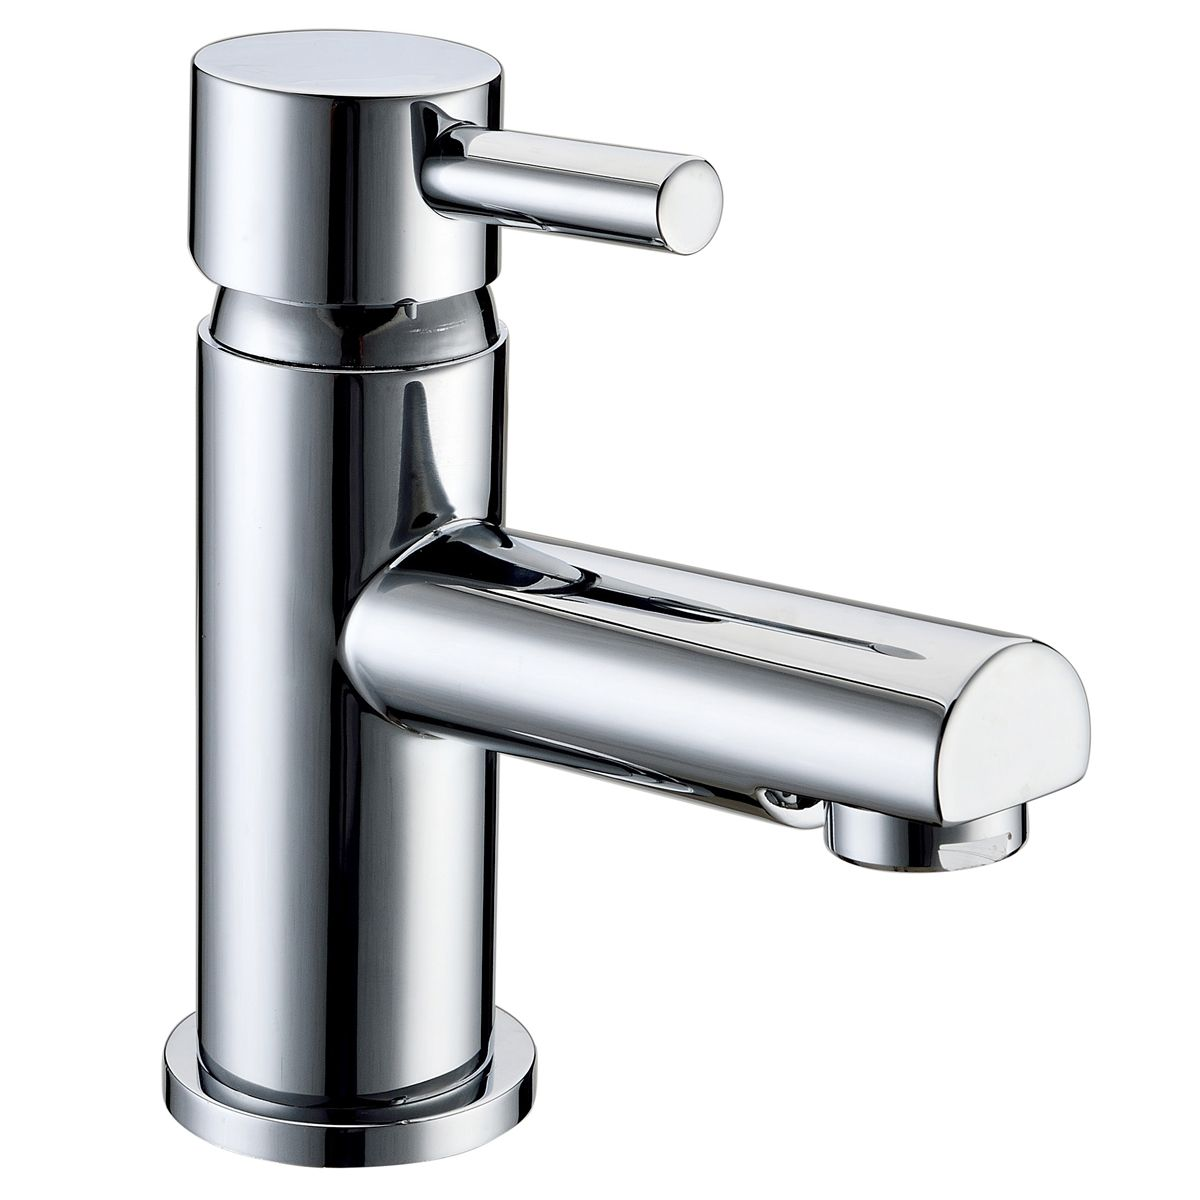 RAK Prima Chrome Mono Basin Mixer Tap with Waste